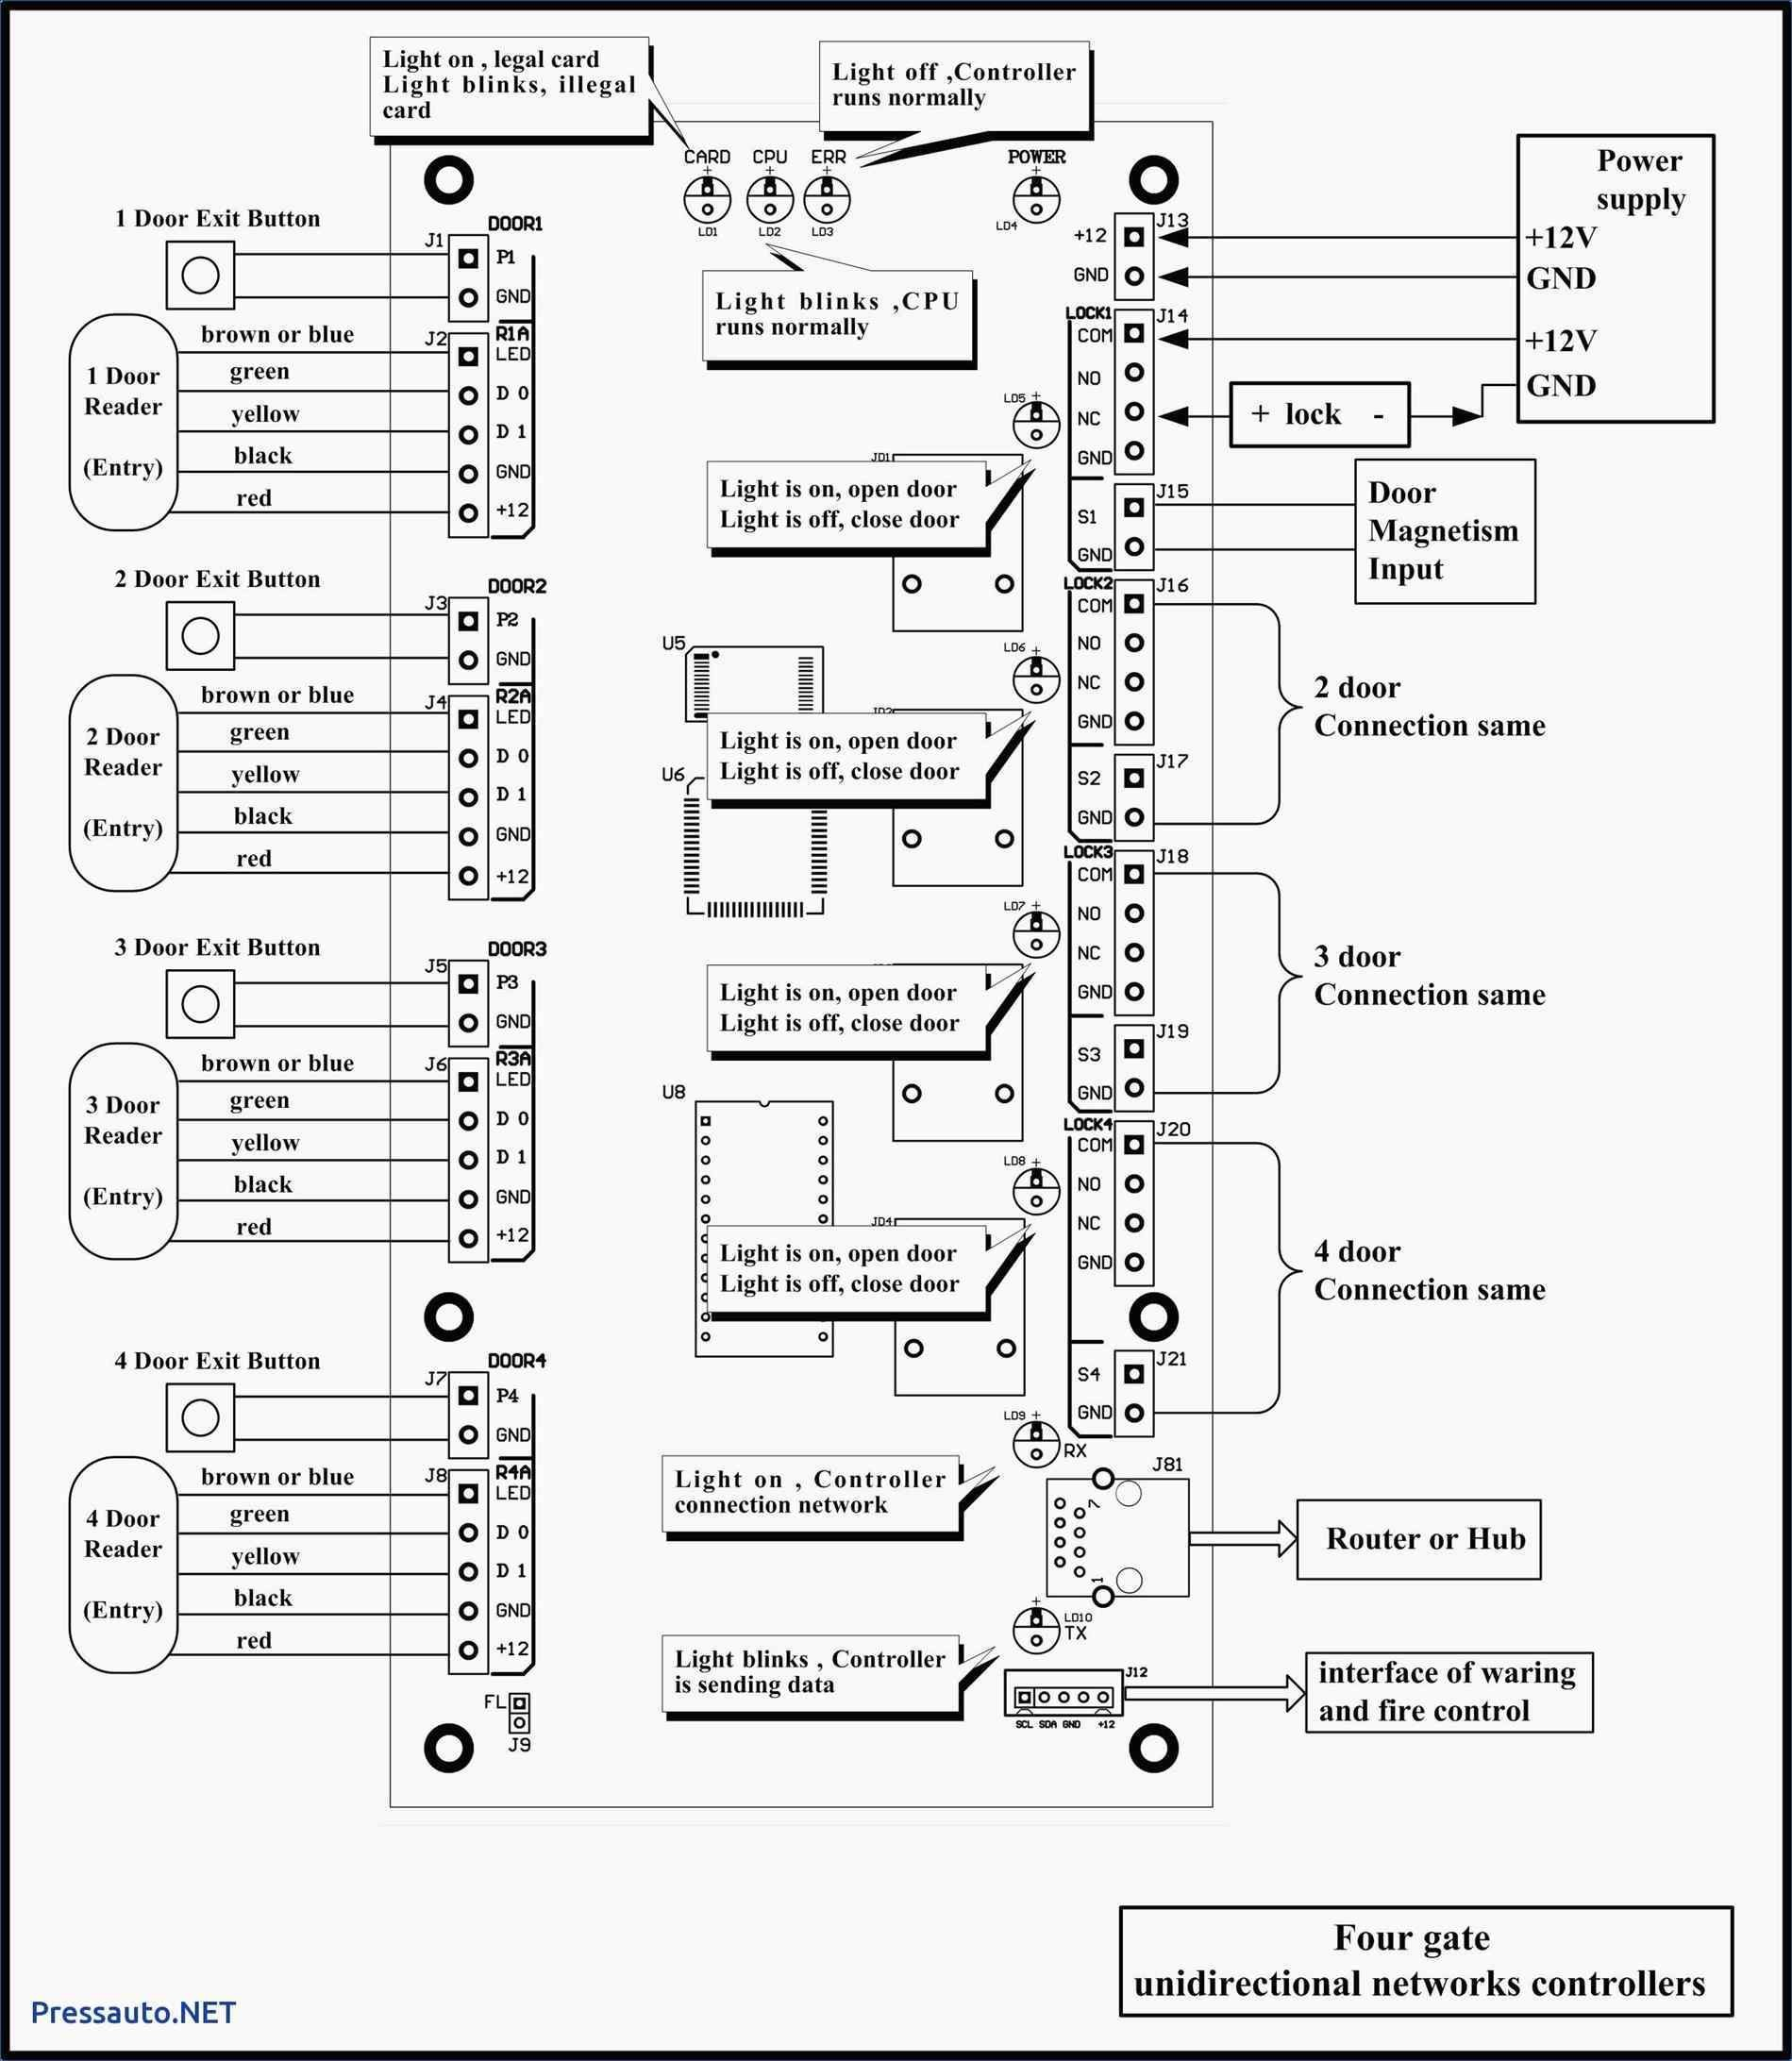 Single Line Diagram Electrical House Wiring 92 House Wiring 101 Diagrams Lg tone Pairing Four Major Basic Of Single Line Diagram Electrical House Wiring